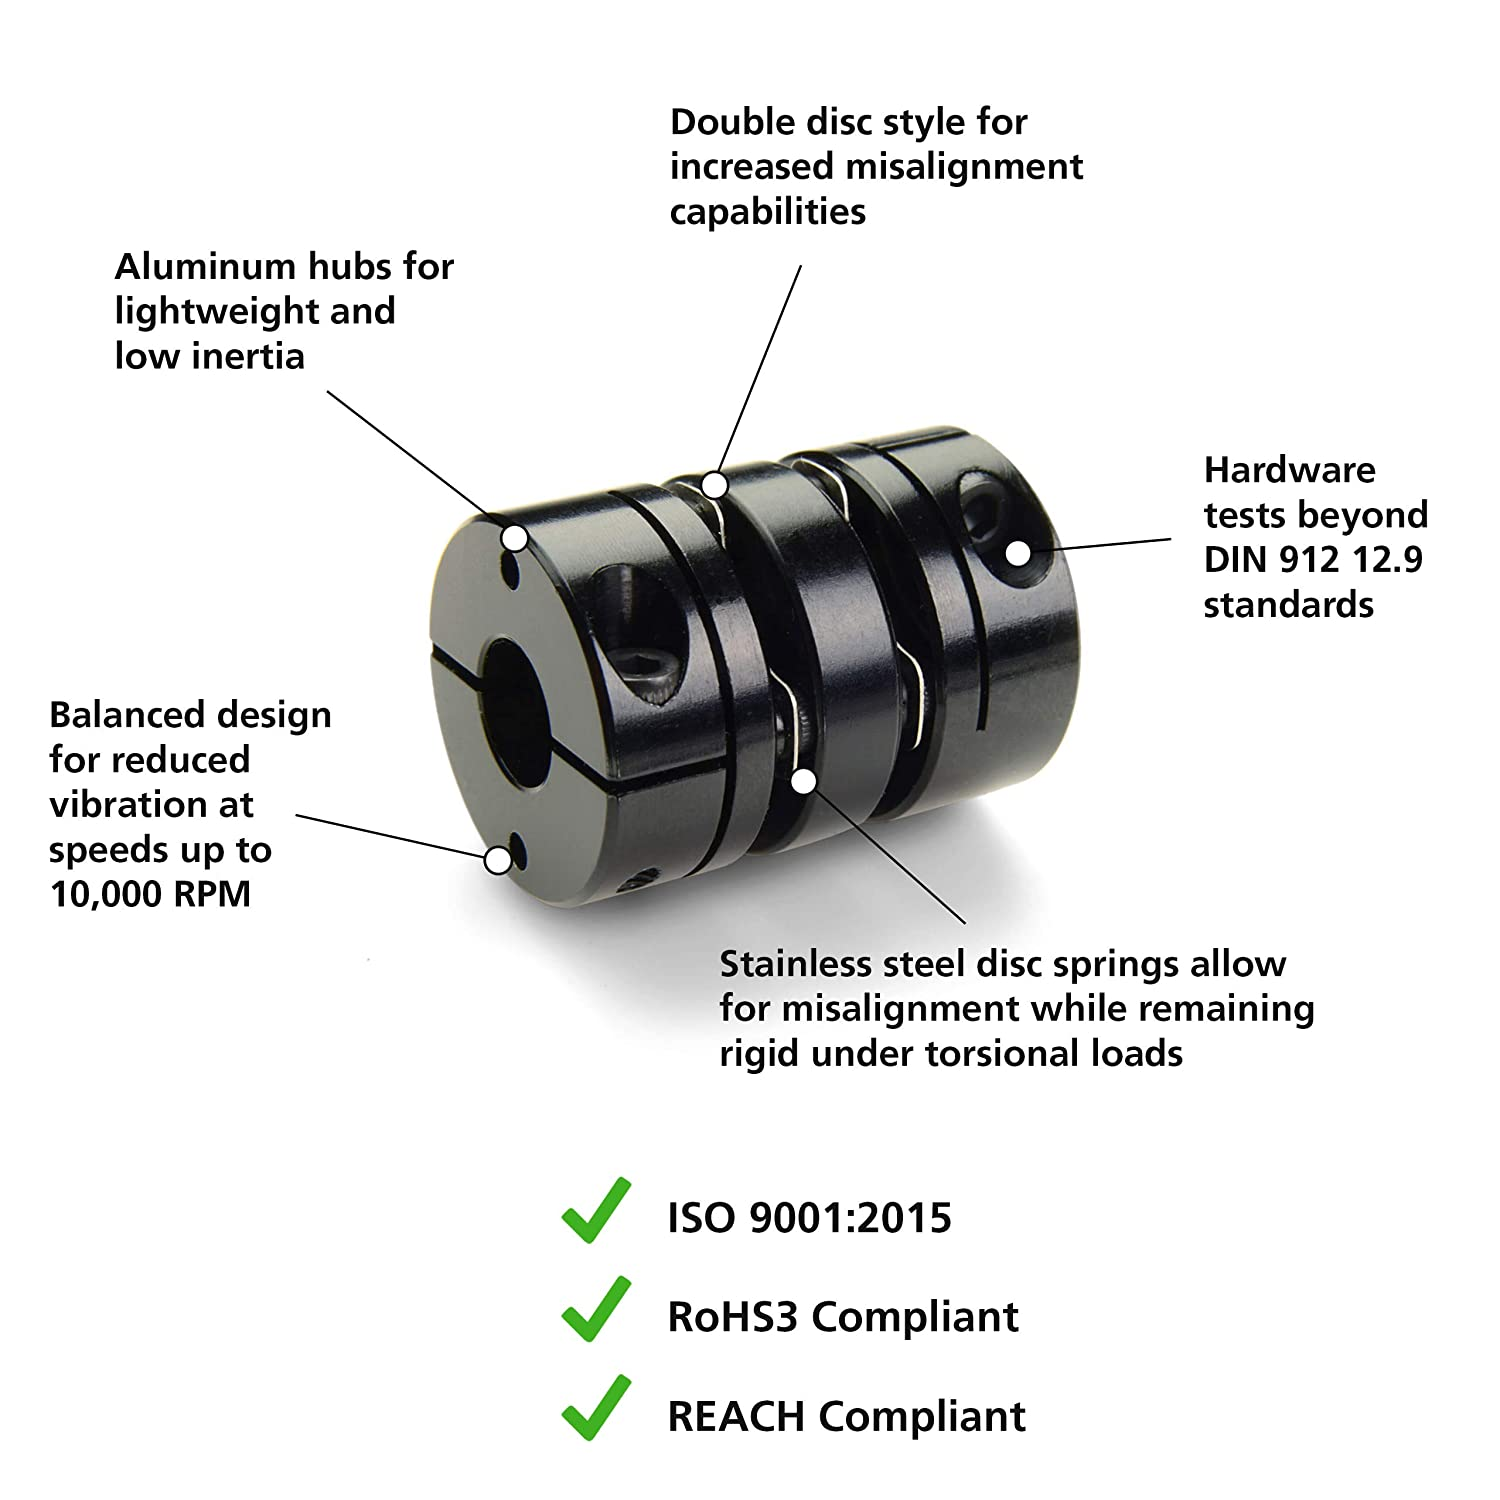 Double Disc Clamp Style Ruland DCD26-10-8-A Aluminum Disc Coupling 0.625 x 0.500 Bores Inc. 1.625 OD 0.625 x 0.500 Bores 1.625 OD Ruland Manufacturing Co